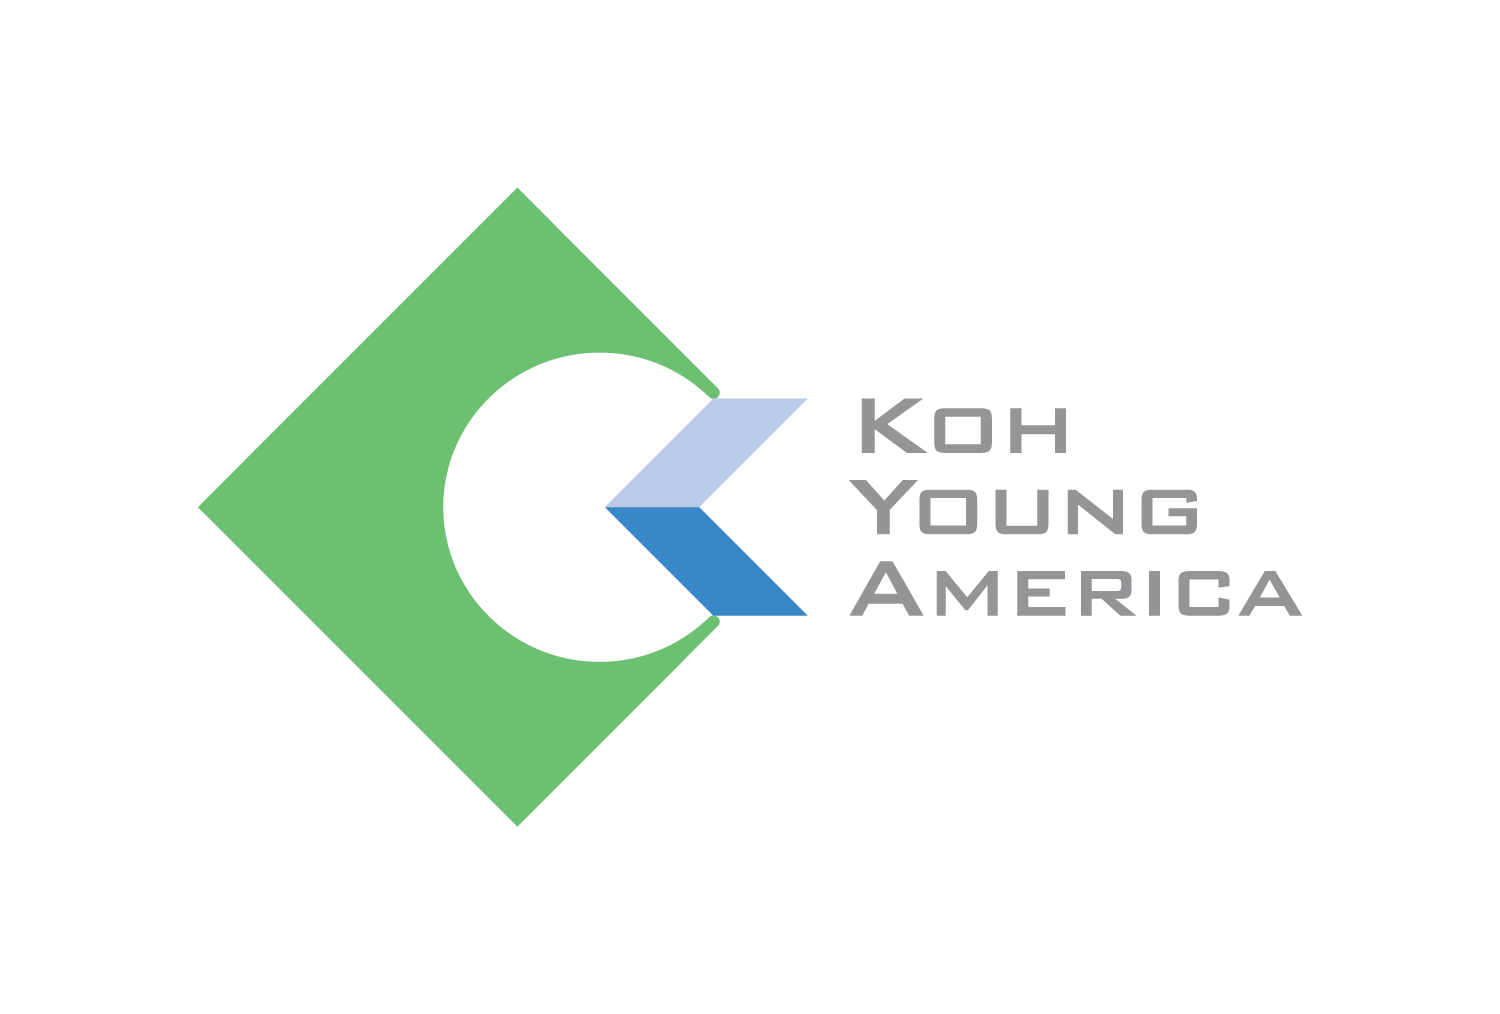 Koh Young America, Inc.